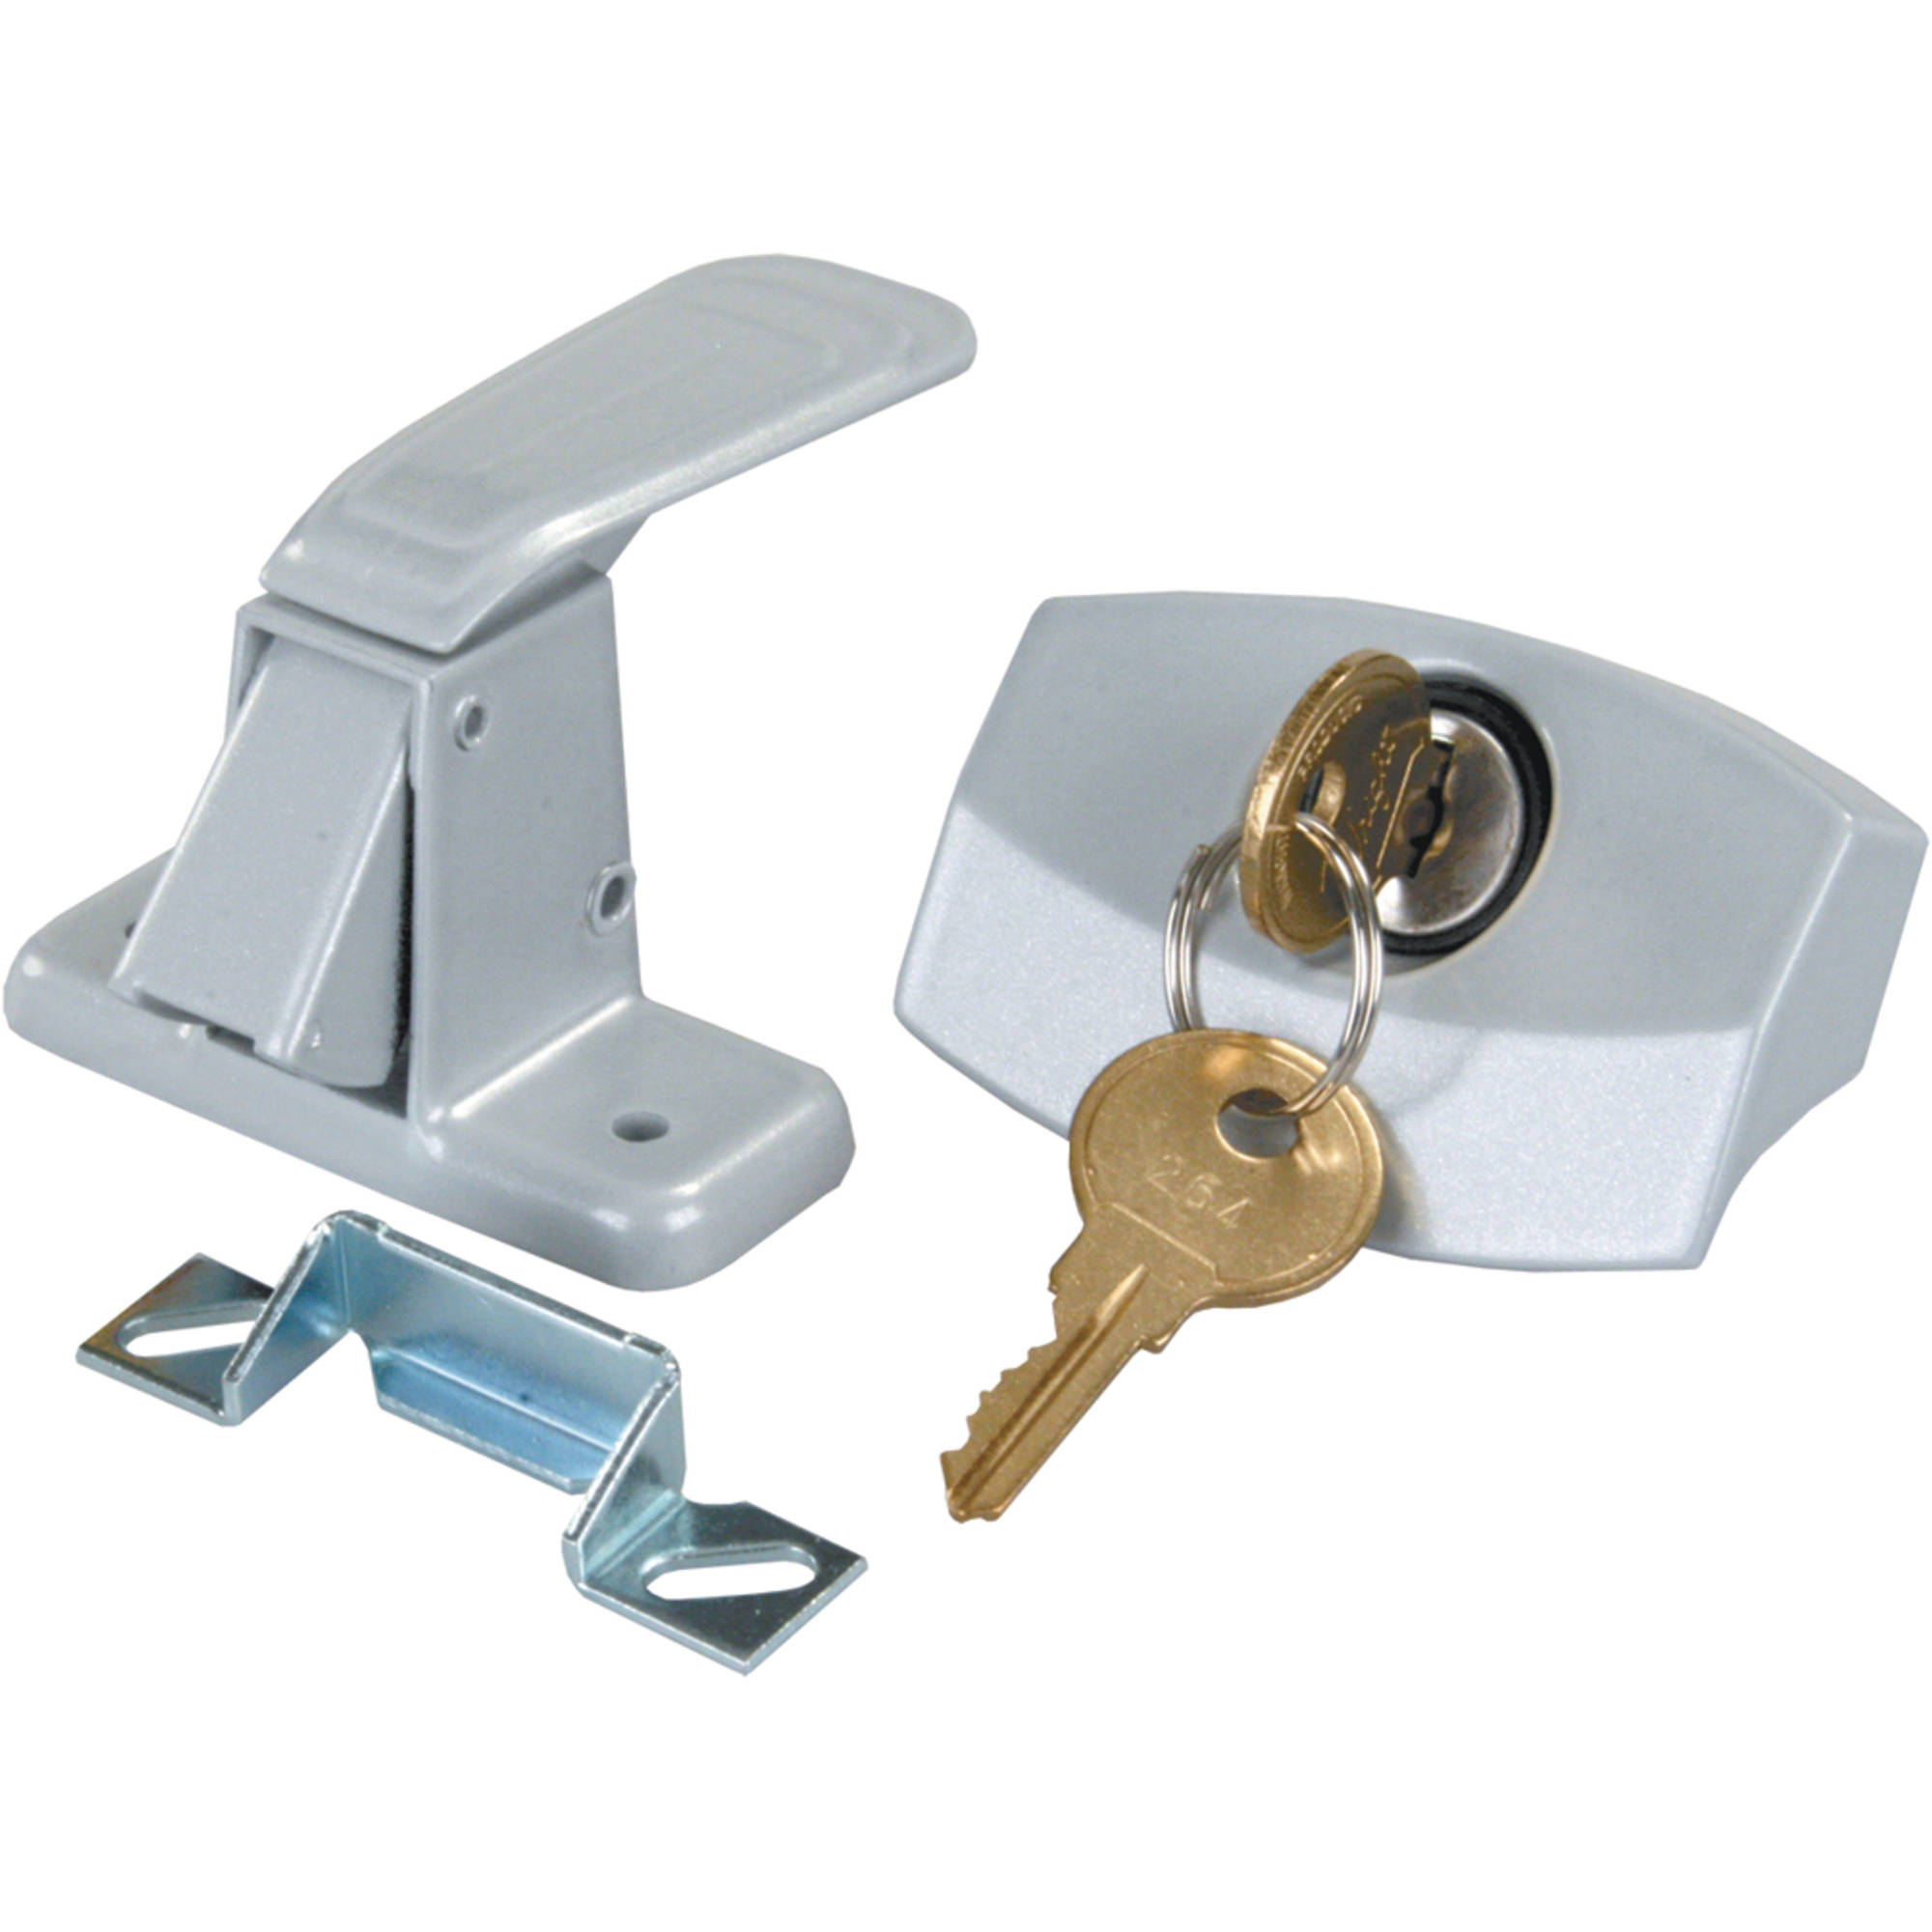 JR Products 10805 Silver Universal Door Latch for RV Camper